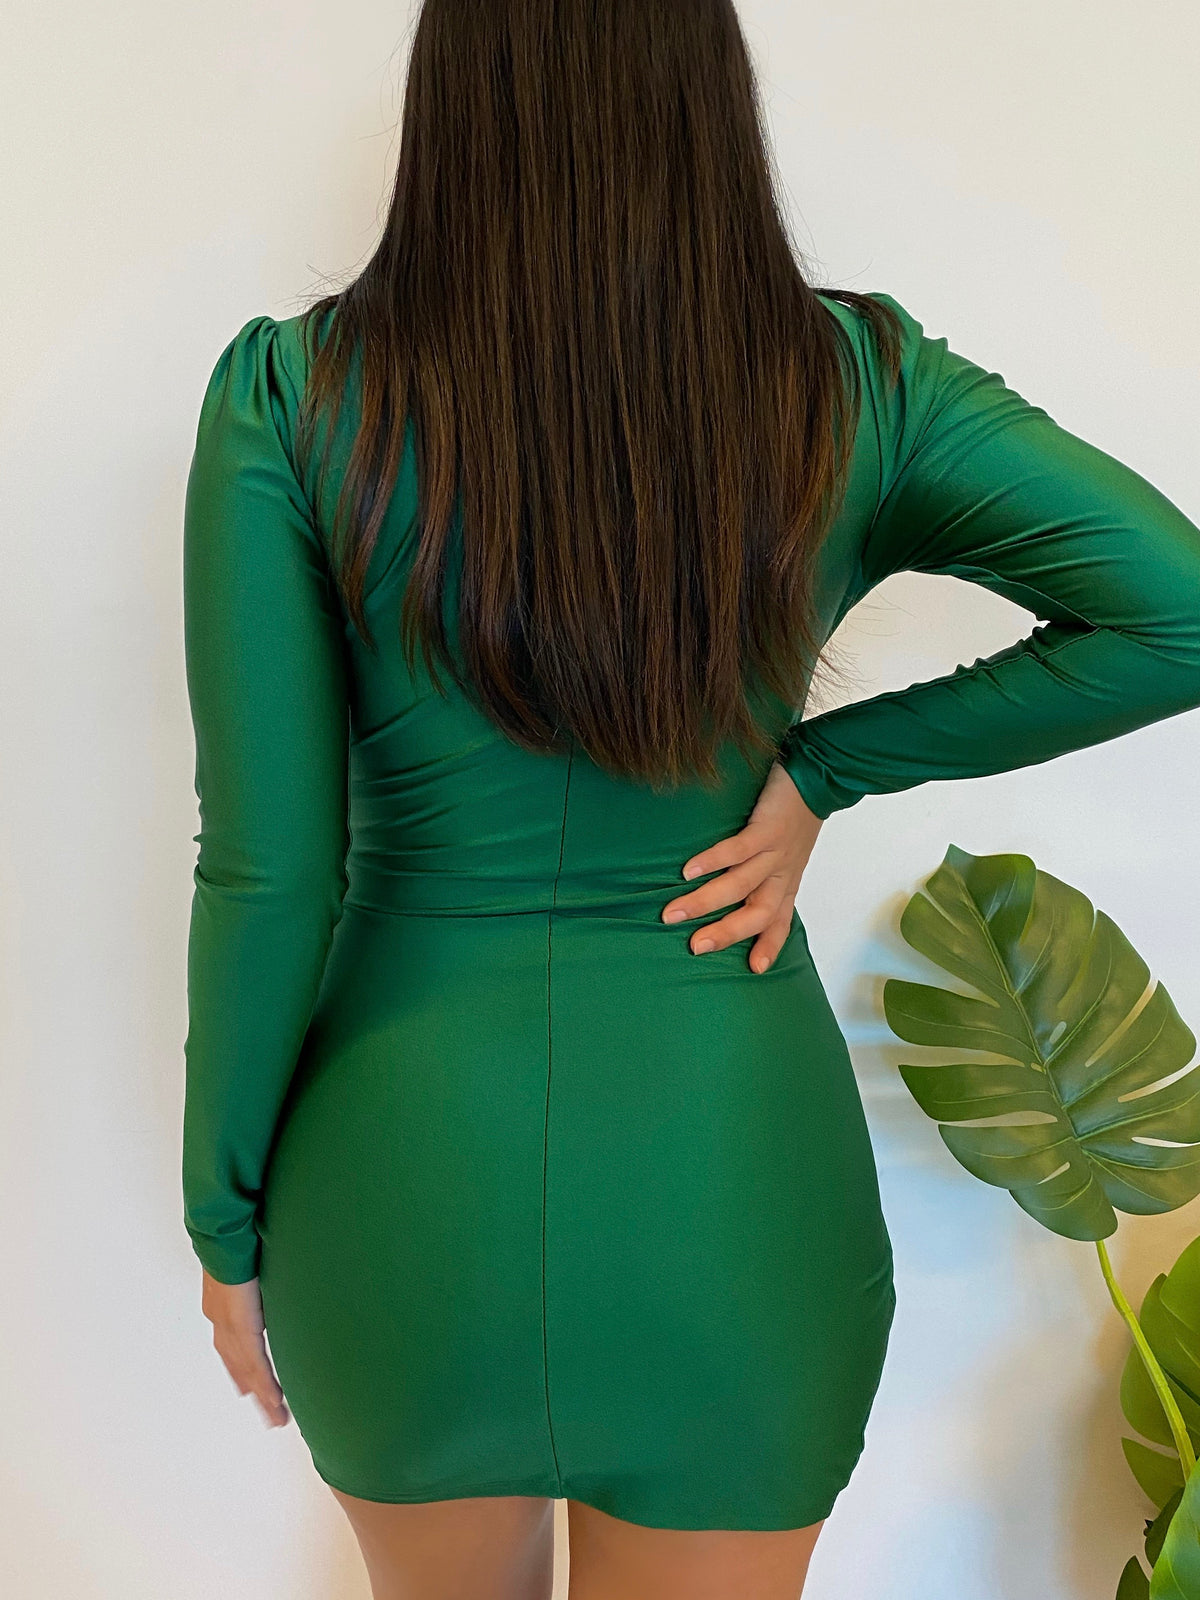 satin green dress, long sleeve, v cut, shoulder pads, wrap dress, mid thigh length